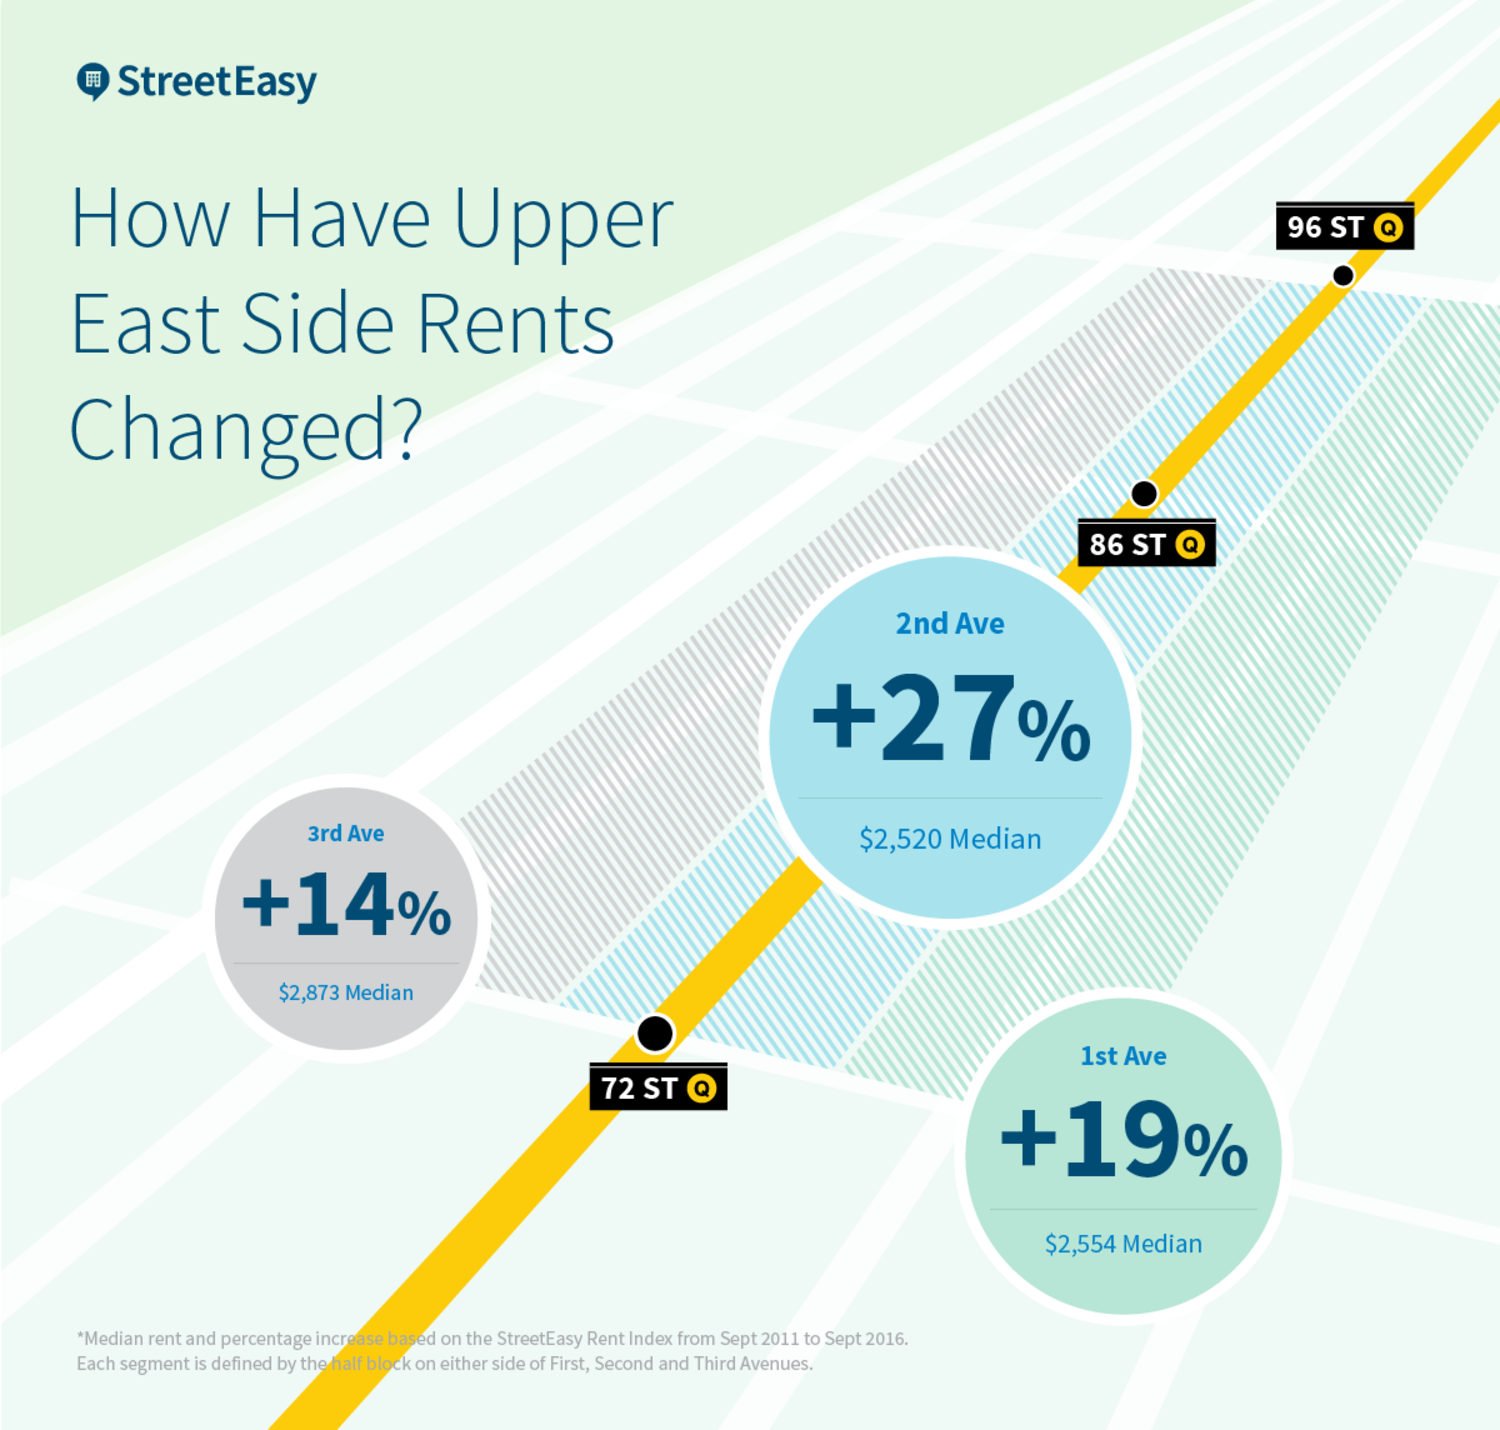 How Have Upper East Side Rents Changed?